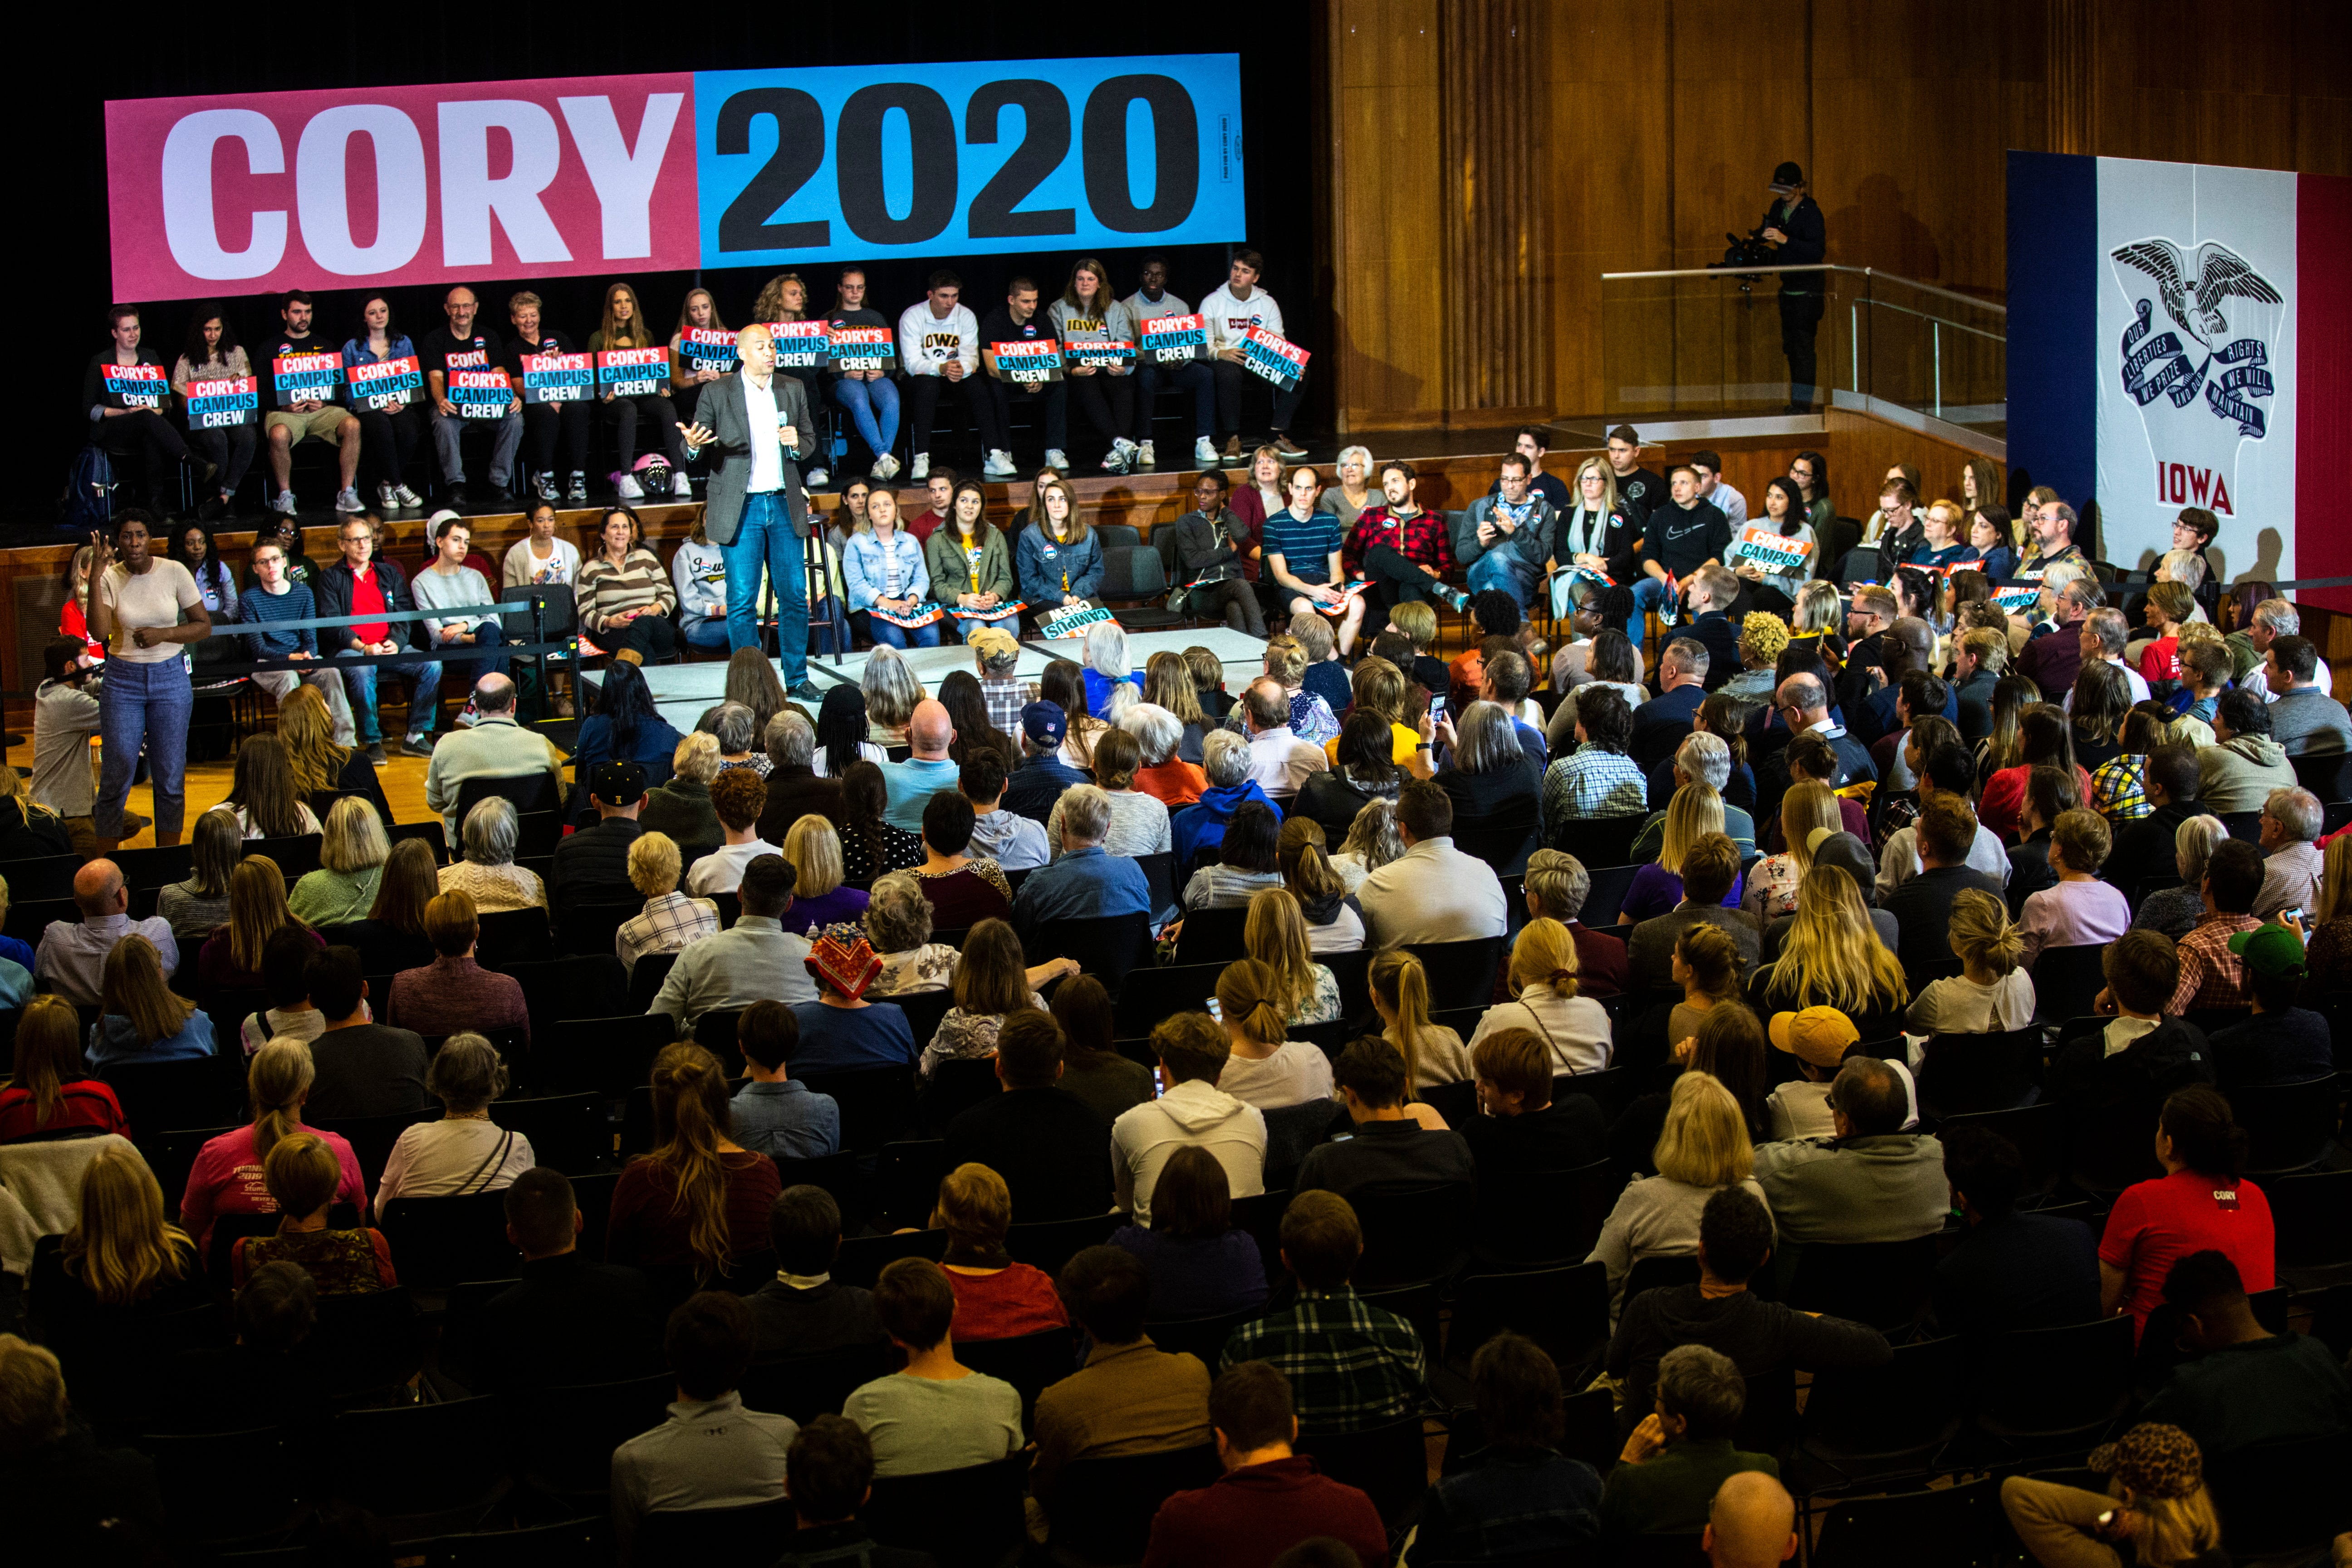 Photos: Cory Booker speaks to 300 people at campaign event on University of Iowa campus